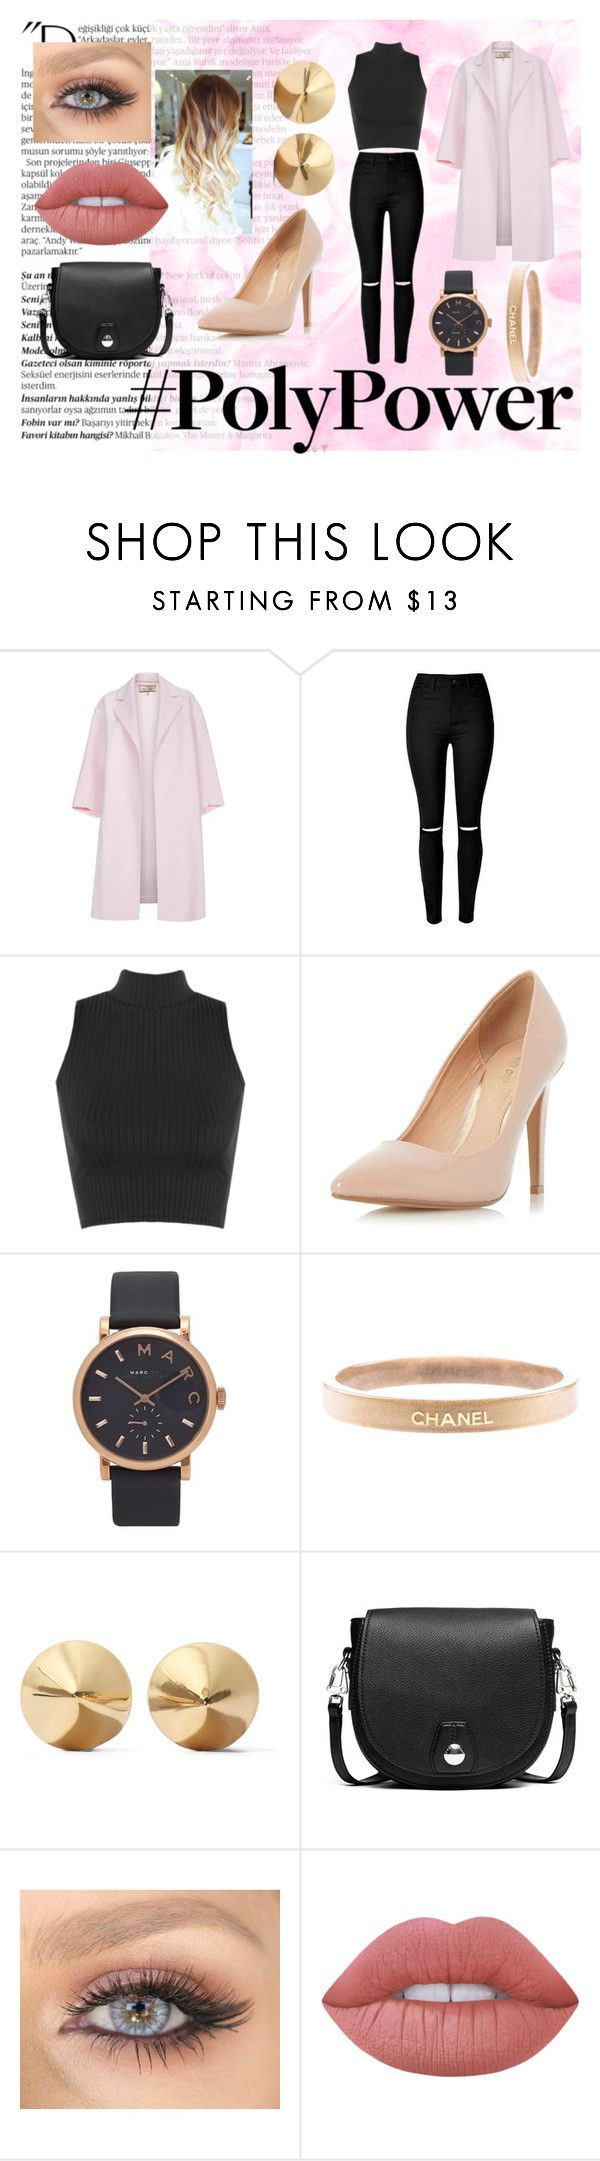 """""""What's Your Power Outfit?"""" by lilyrose2000 on Polyvore featuring Balmain, Paul Smith, WearAll, Dorothy Perkins, Marc Jacobs, Chanel, Eddie Borgo, rag & bone, Lime Crime and BlackAndPink"""